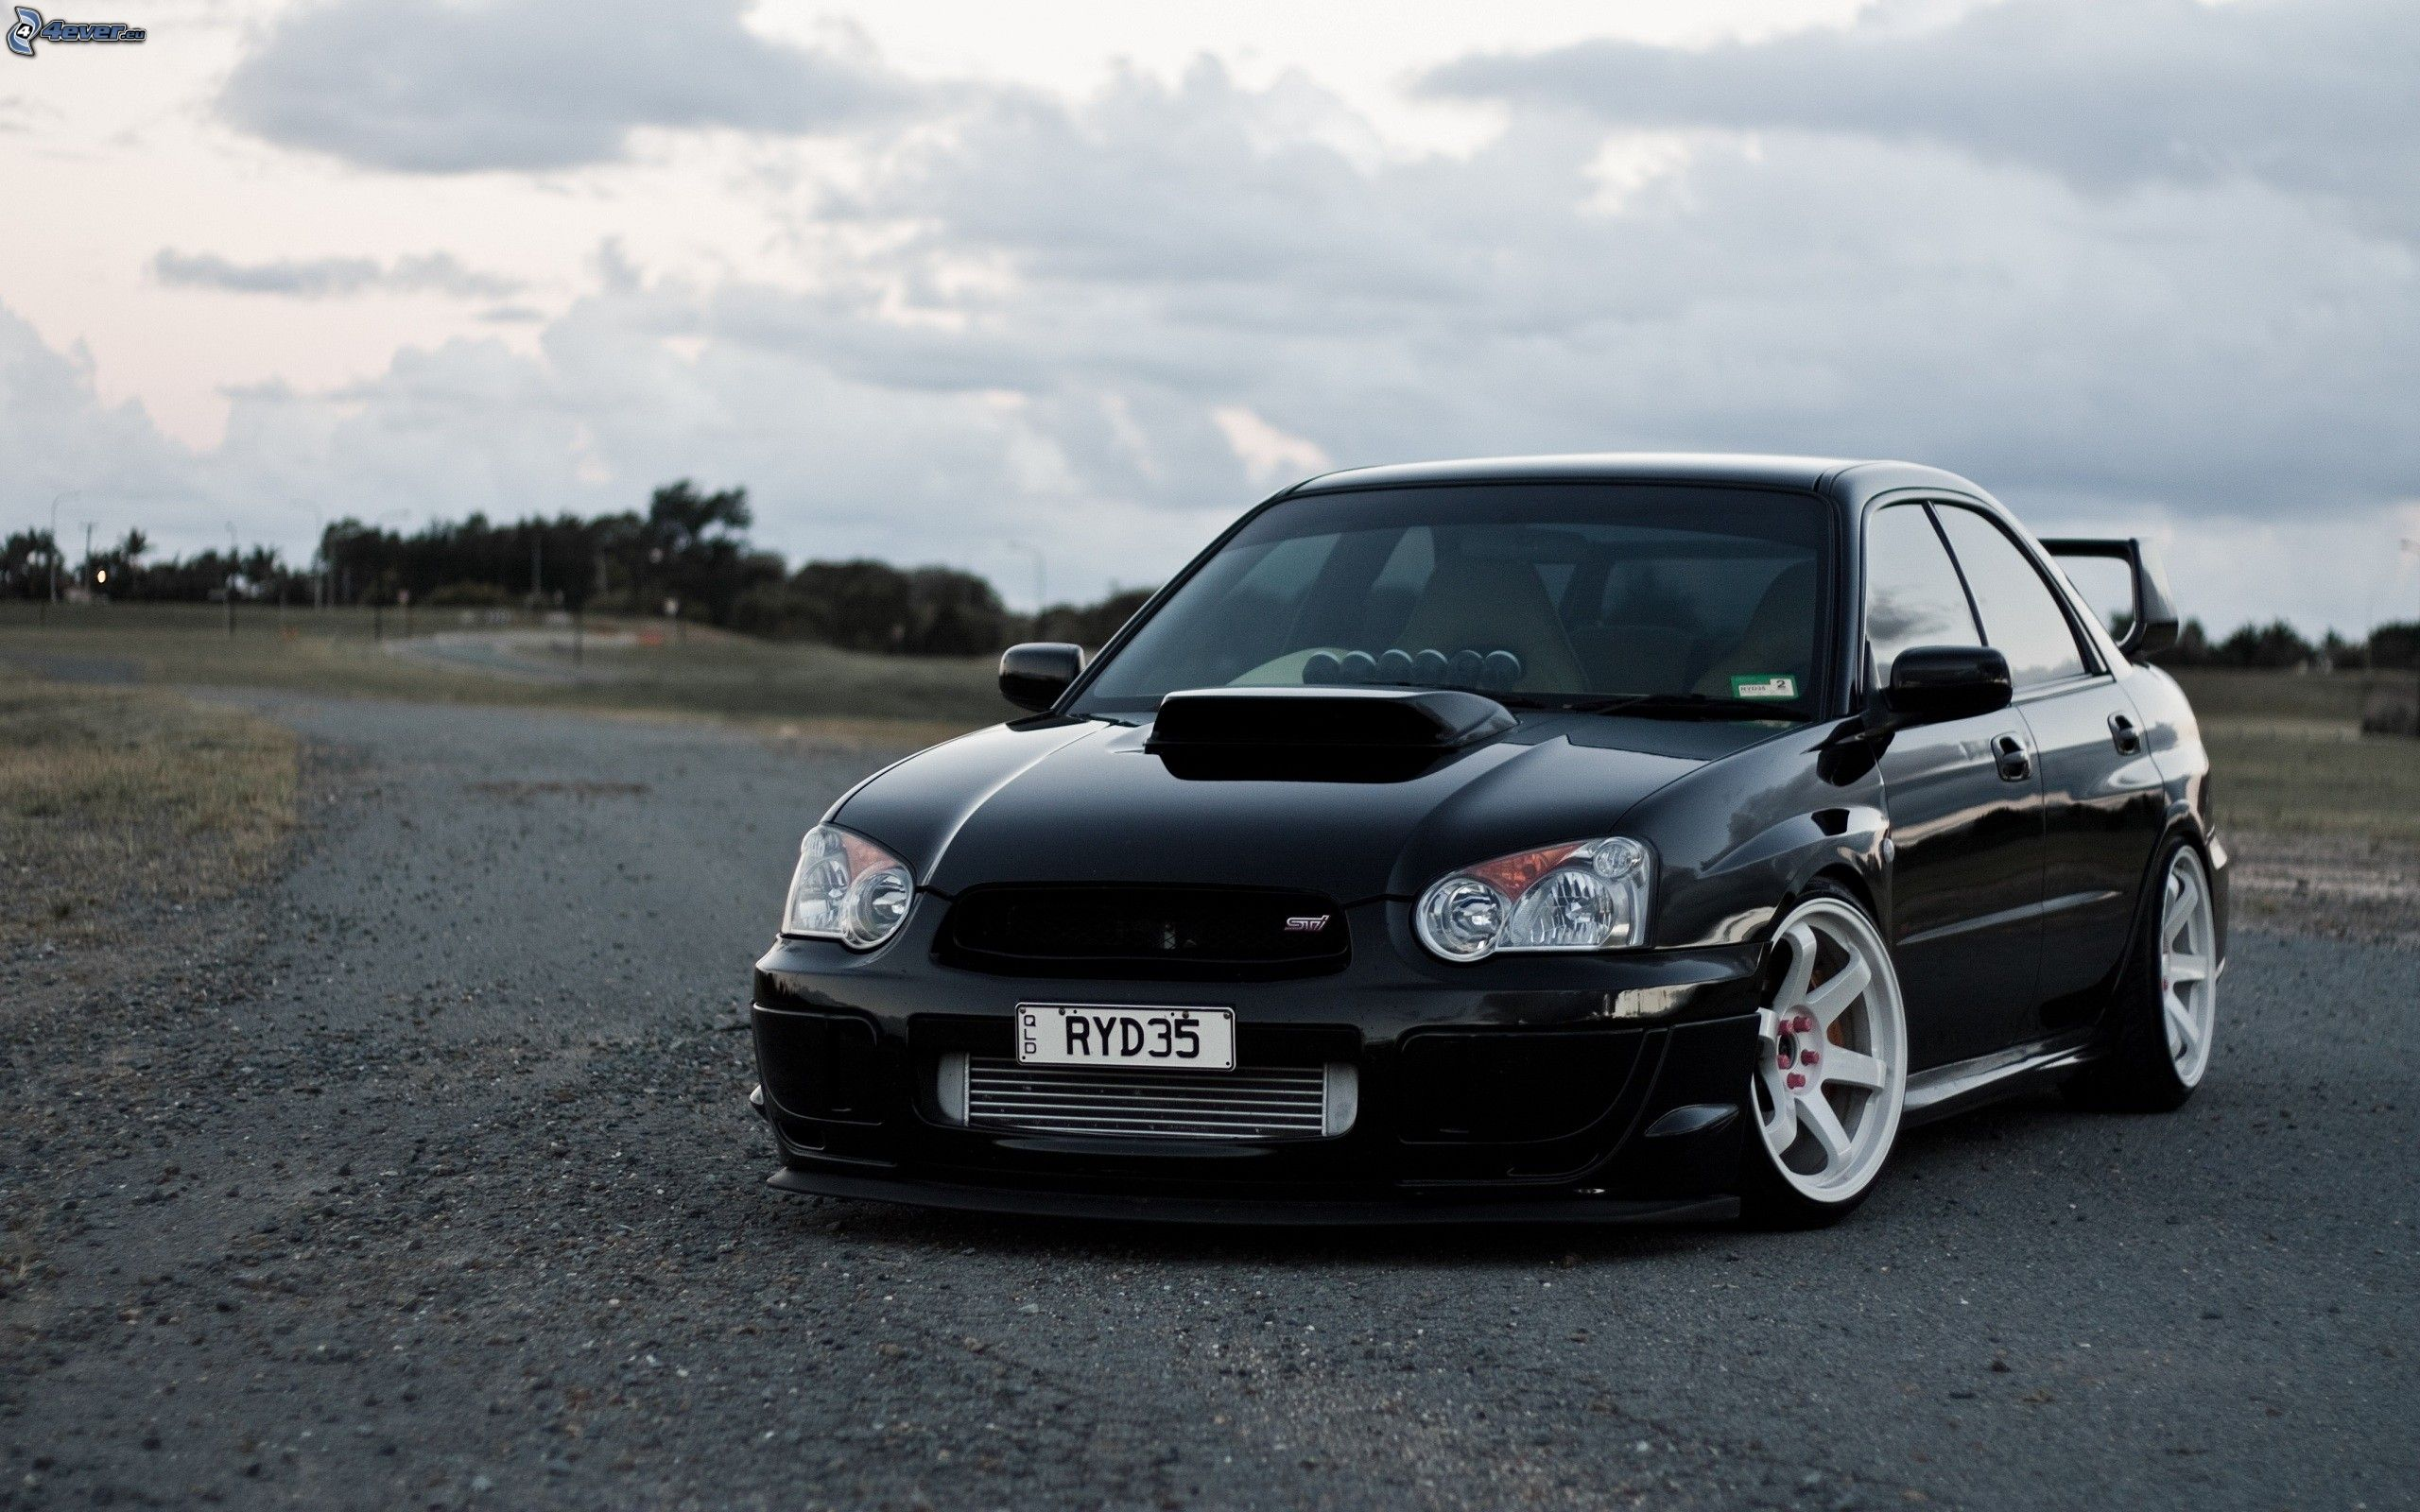 Awesome clean Subaru impreza !